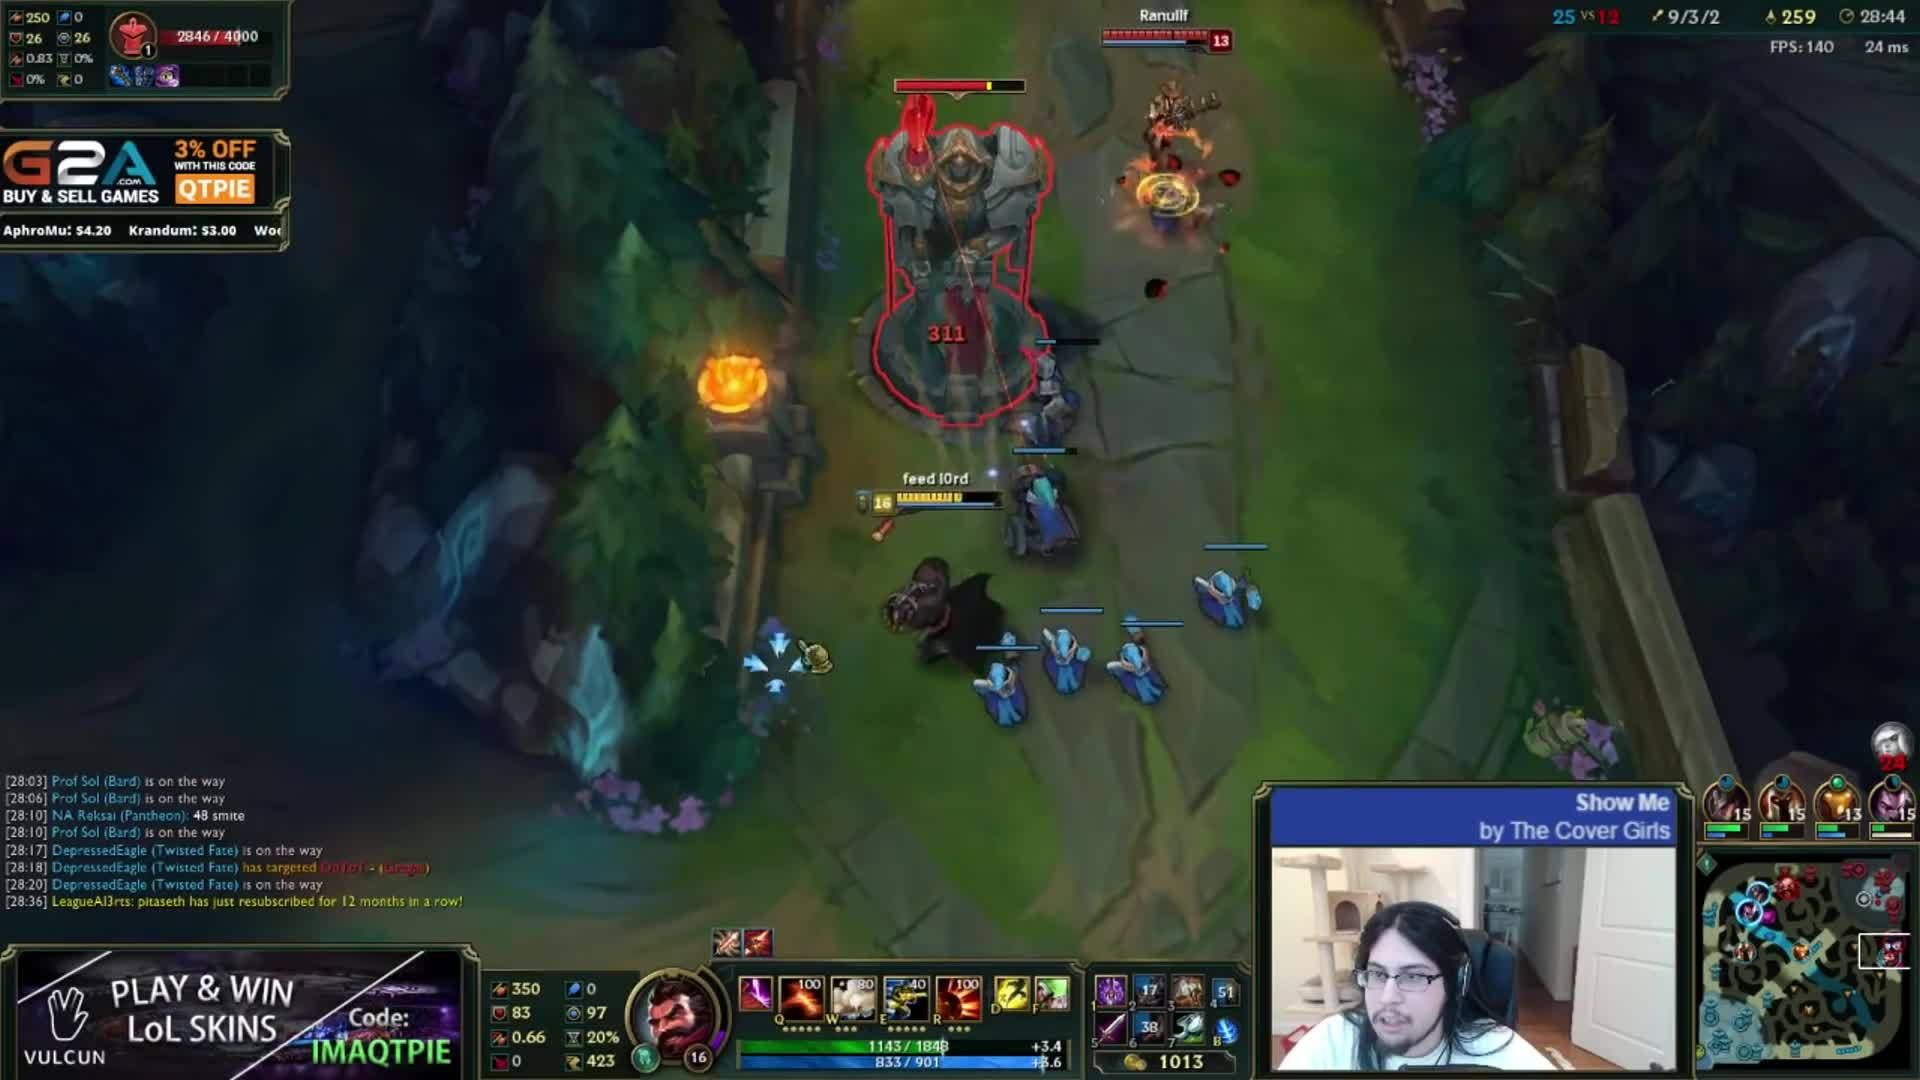 Imaqtpie Gifs Search | Search & Share on Homdor